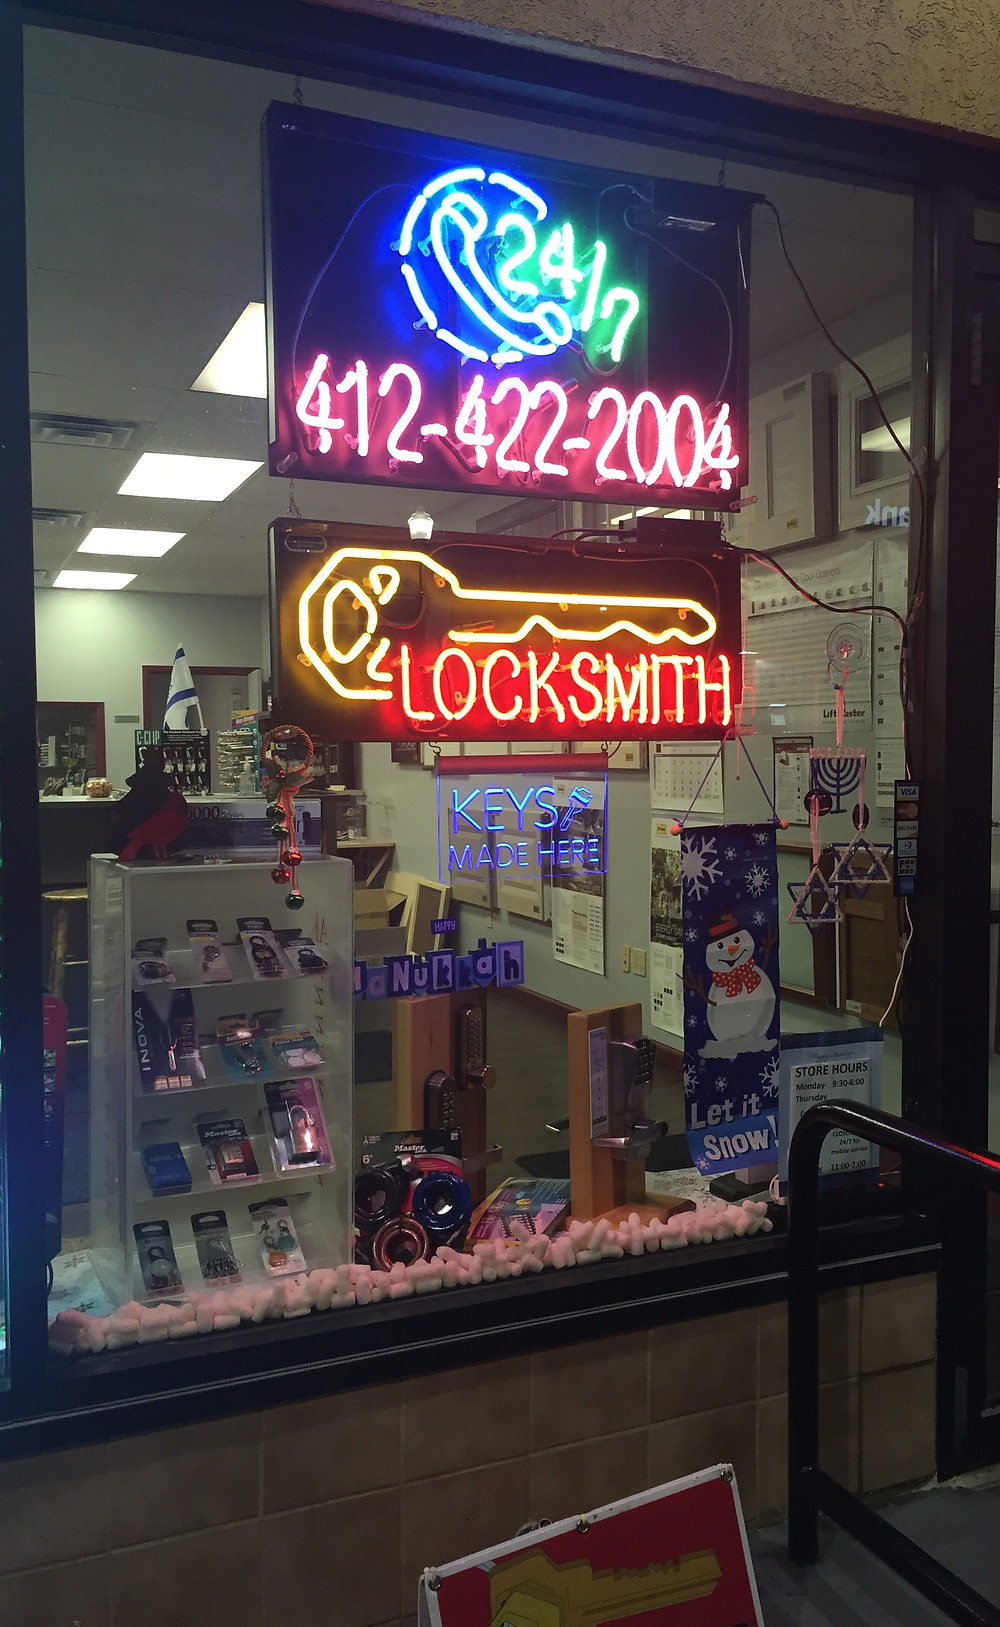 Murray Avenue Locksmith Storefront decoration for the holidays